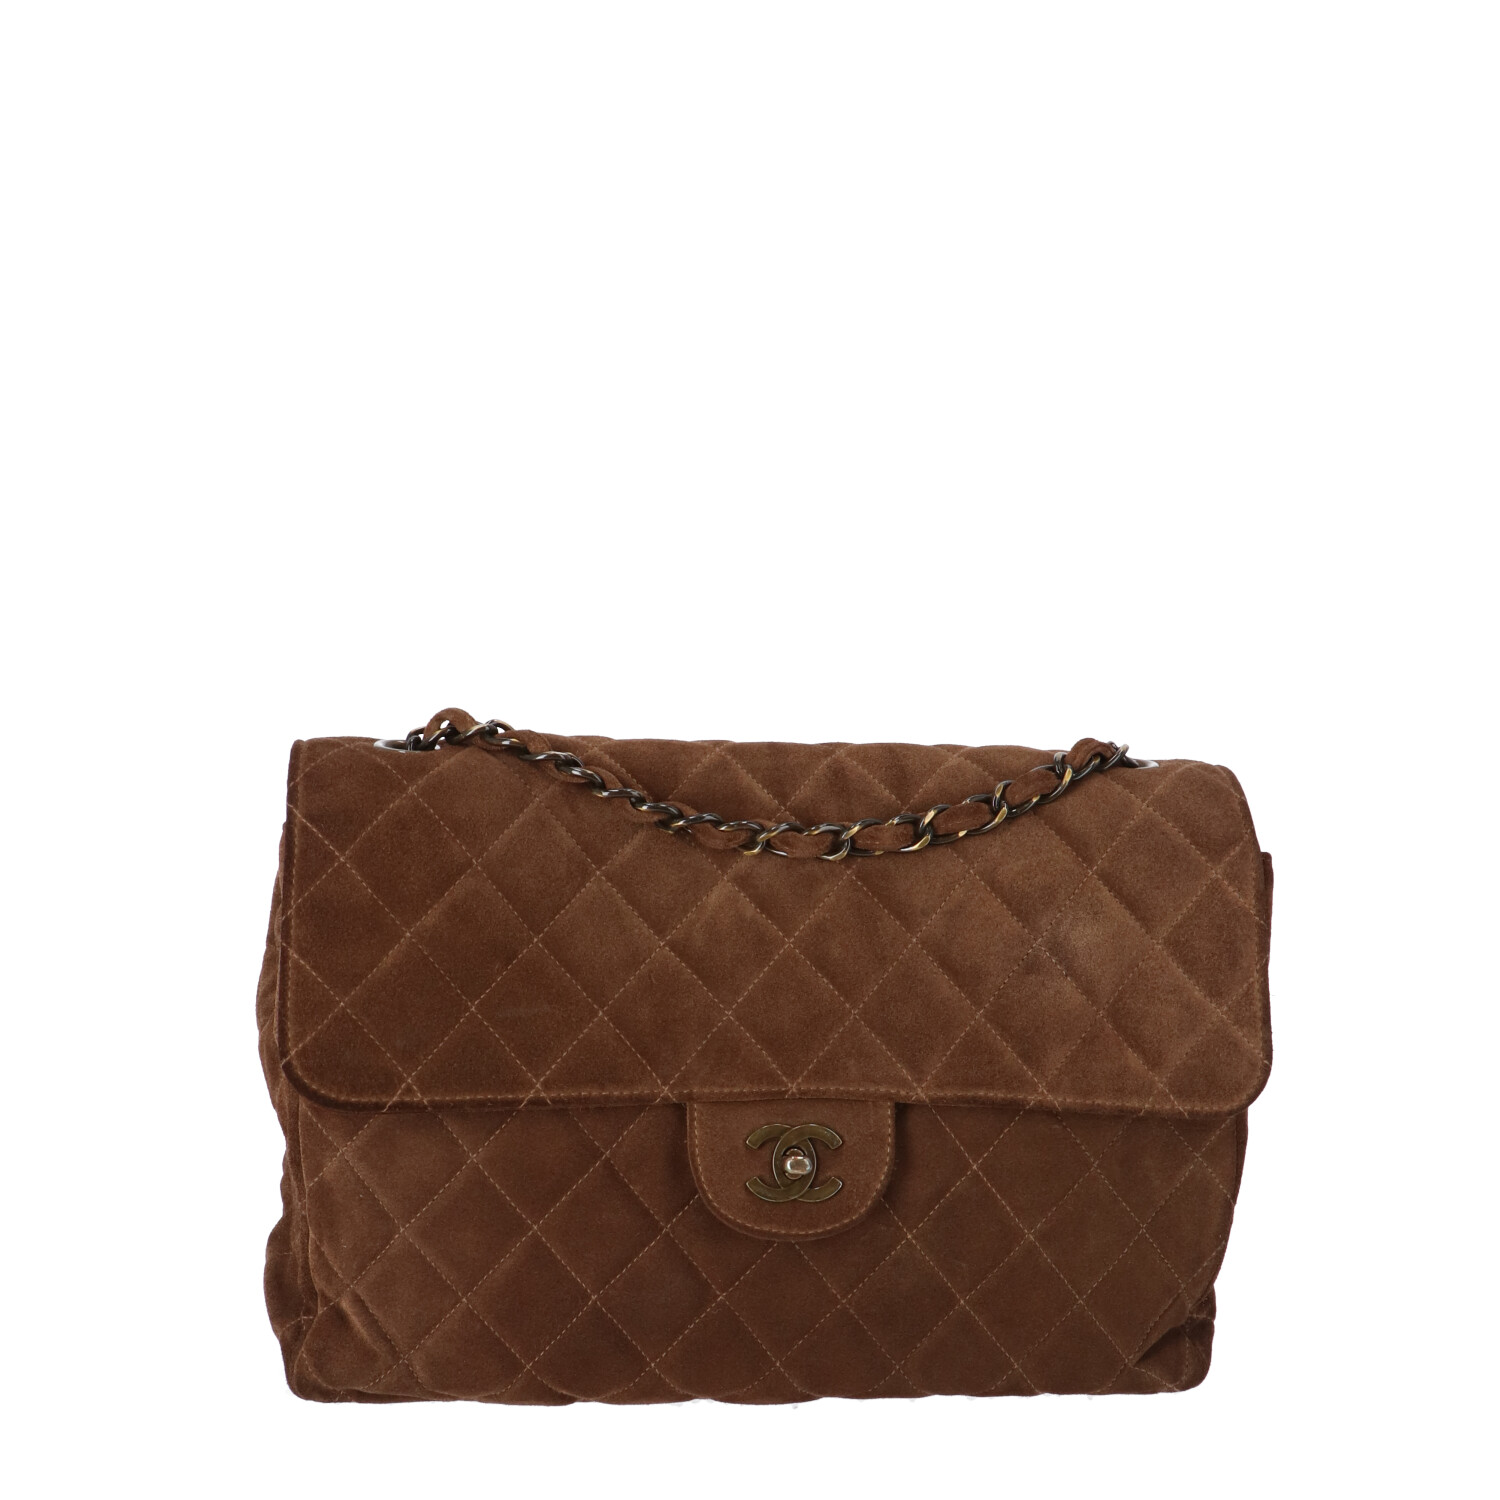 Brown Large Suede Classic Single Flap Bag